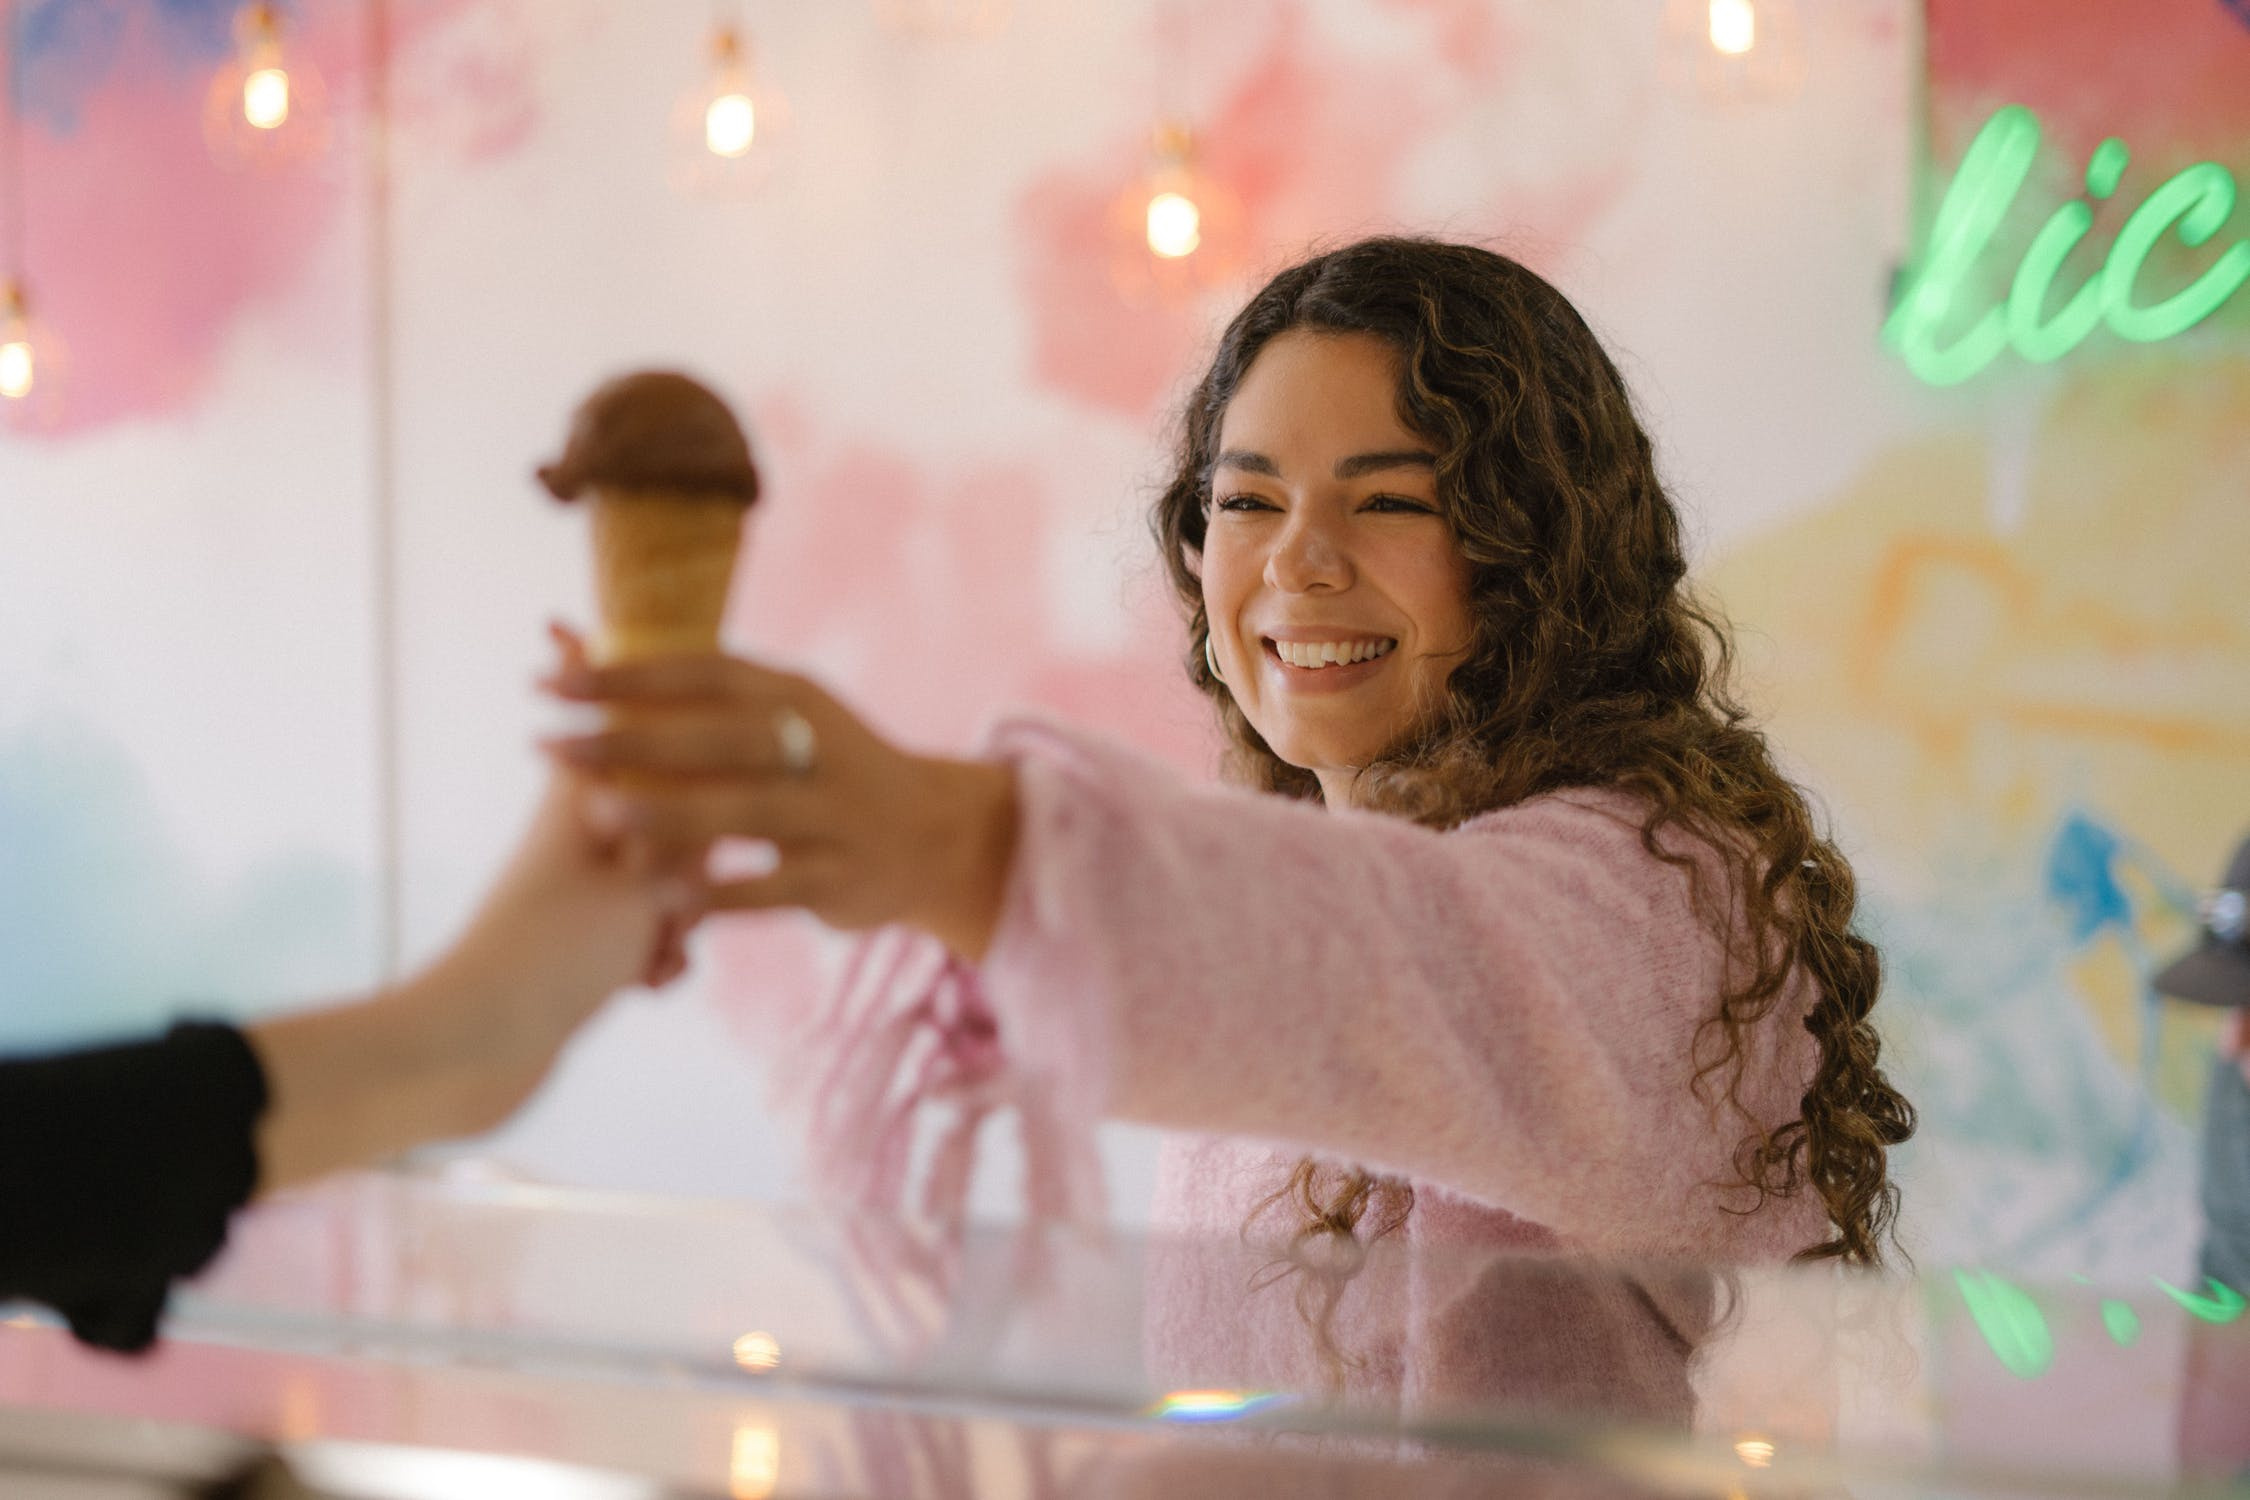 Popular Ice Cream Shop Franchise | Be Your Own Boss